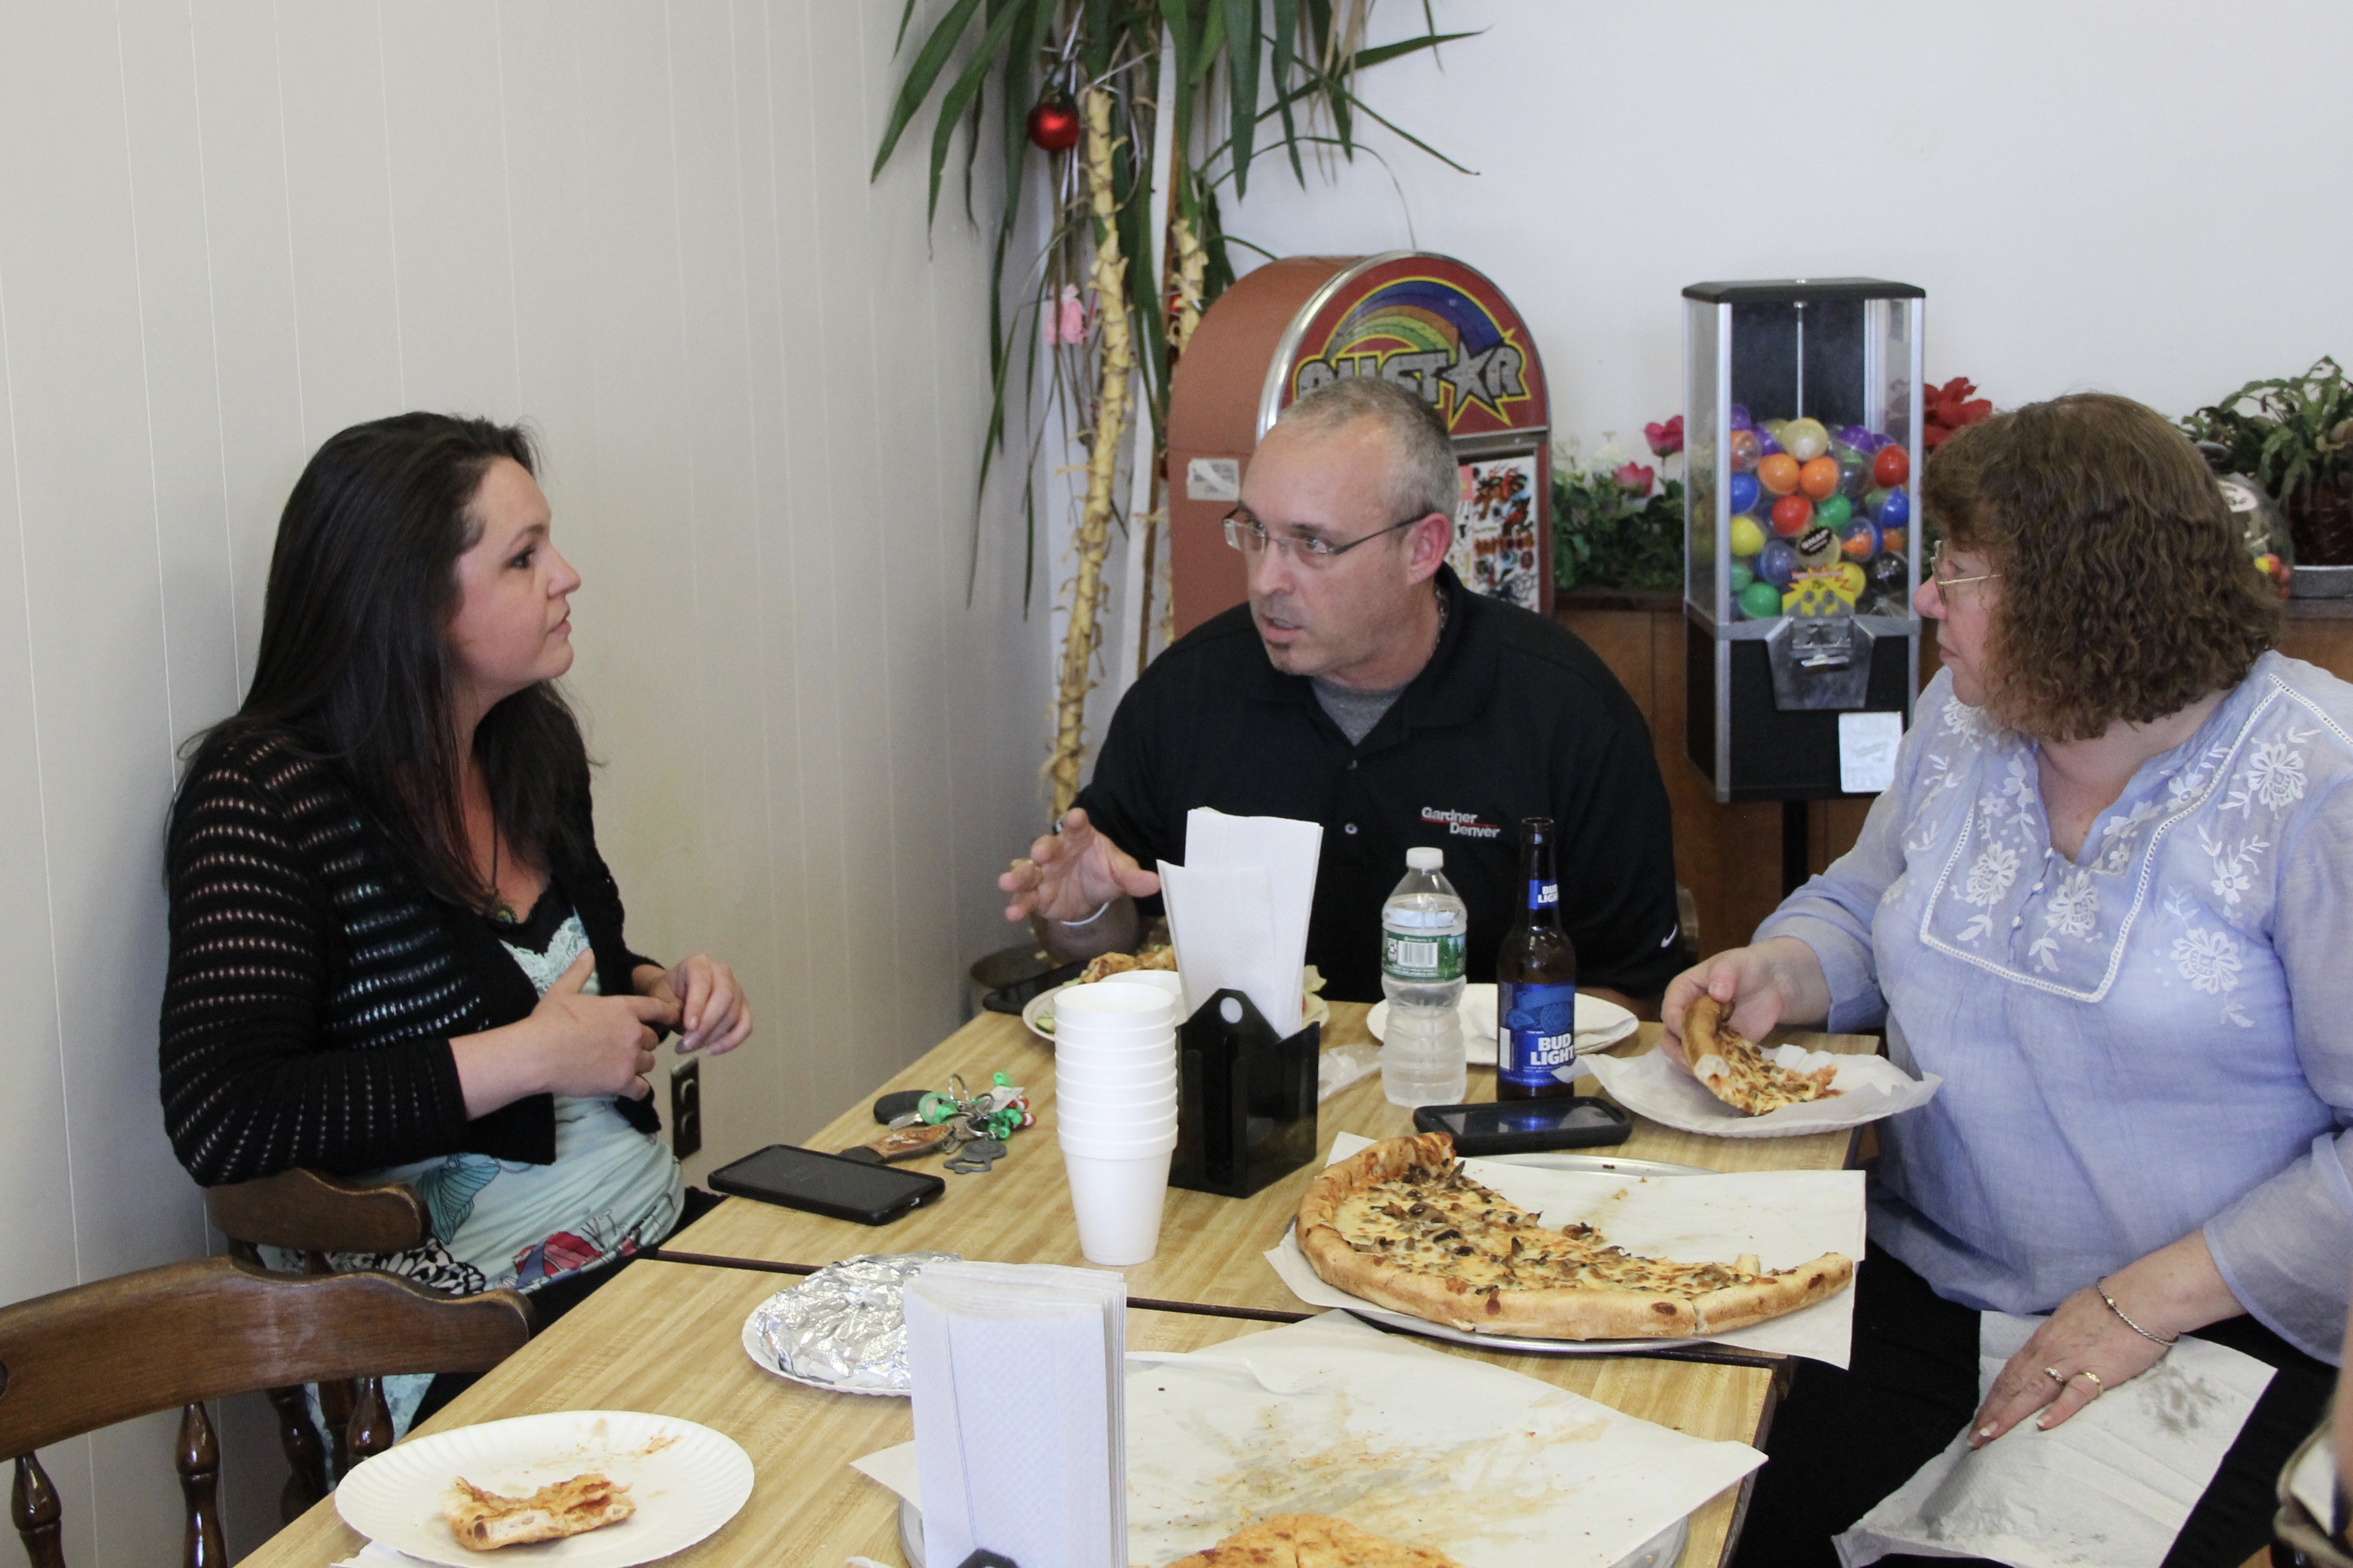 Town Council Candidates Grab A Slice With Voters